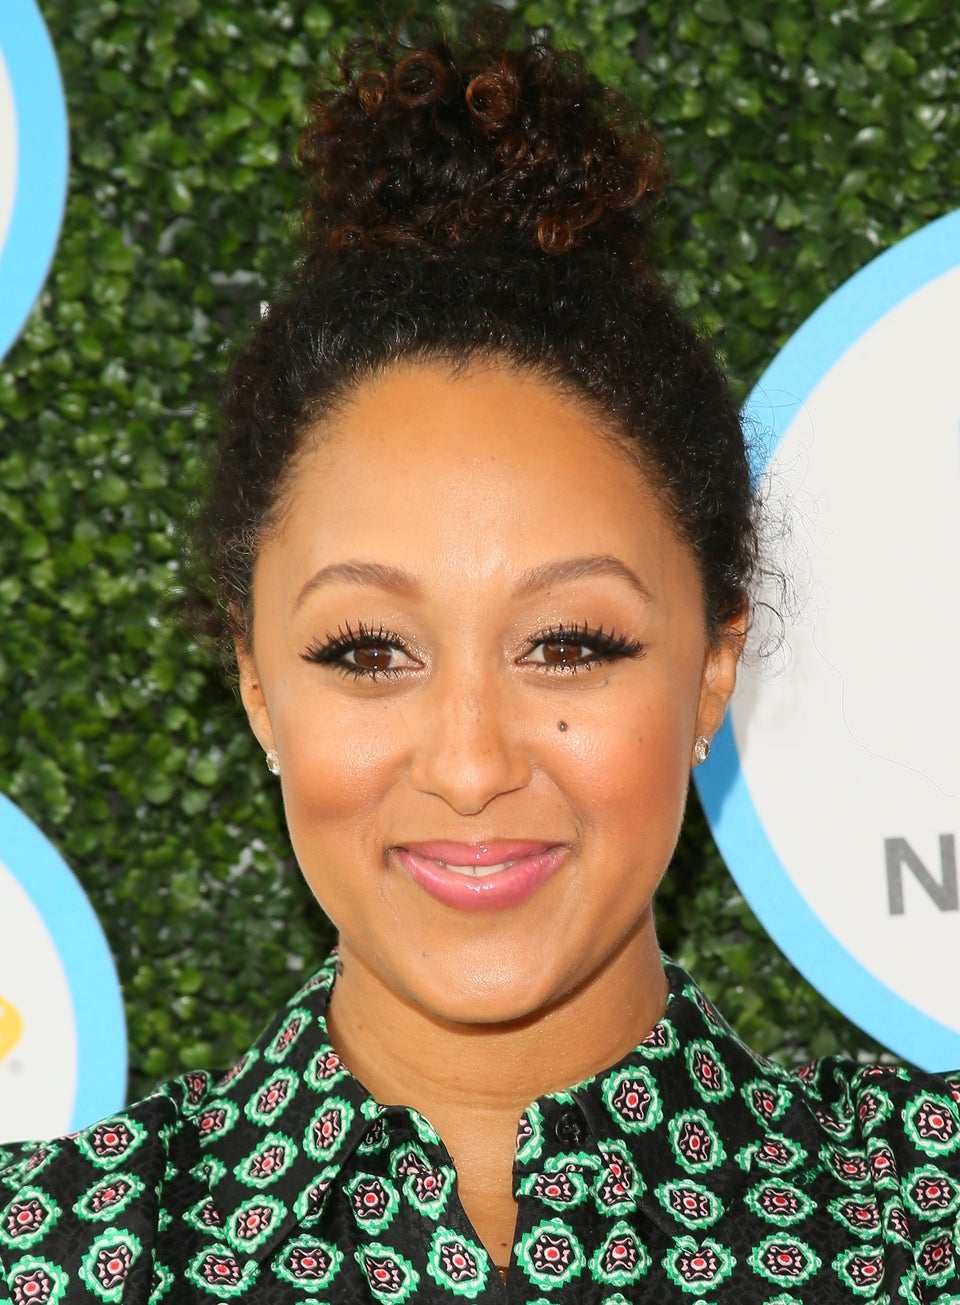 We're All in Our Feels Over Tamera Mowry-Housely's Messy Curly Bun